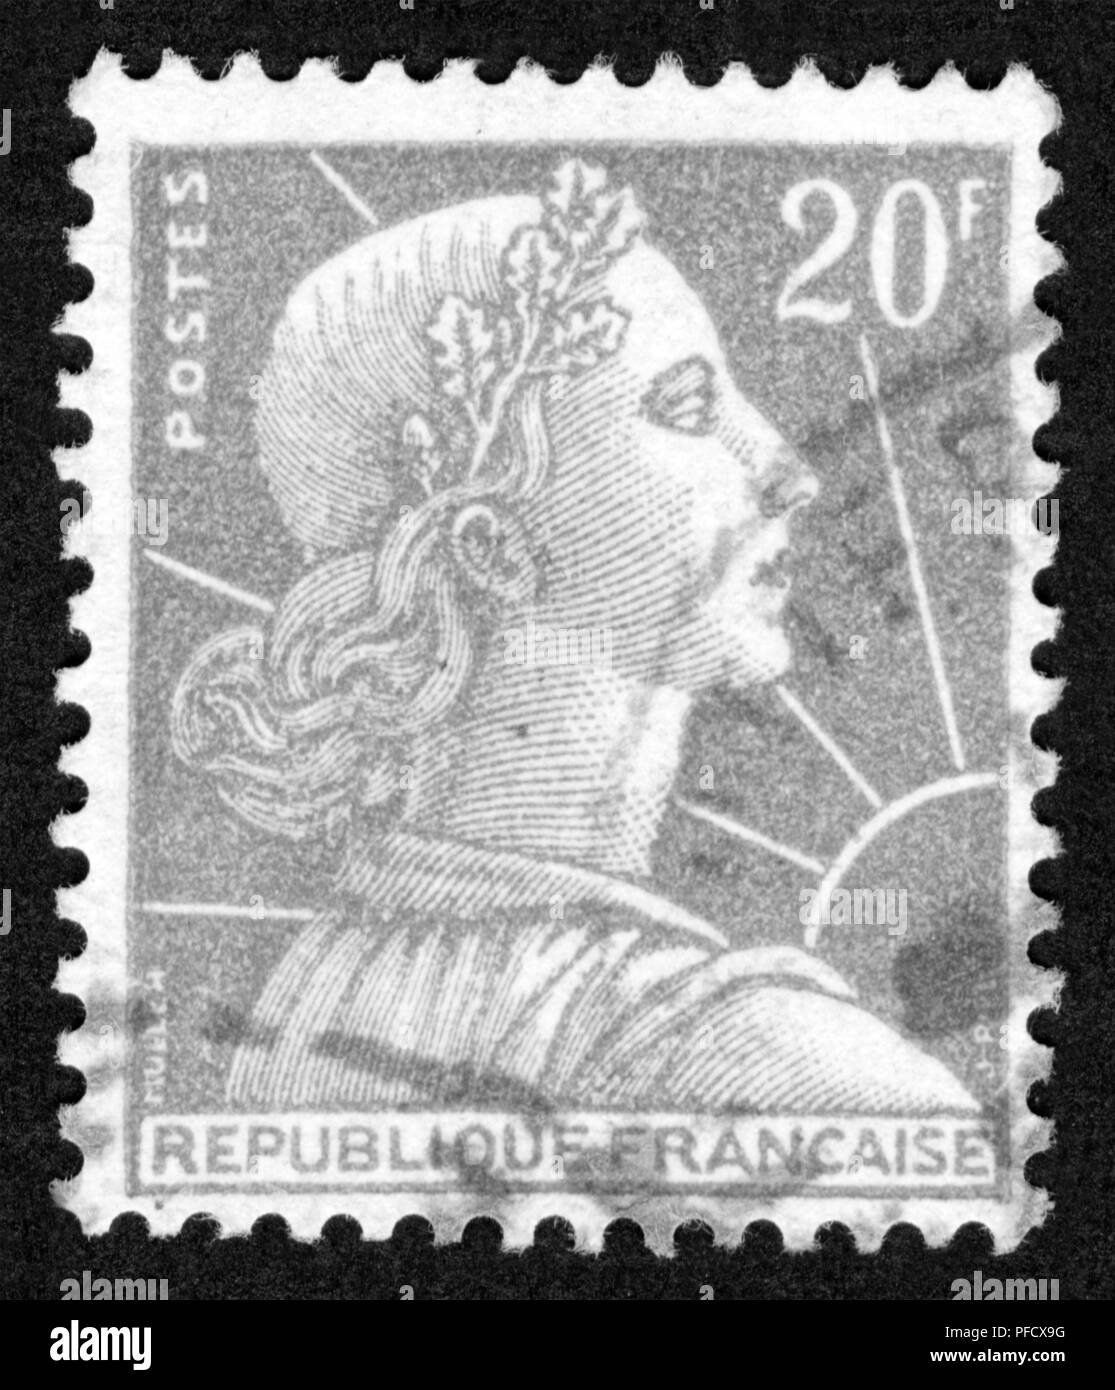 Stamp printed in France - Stock Image